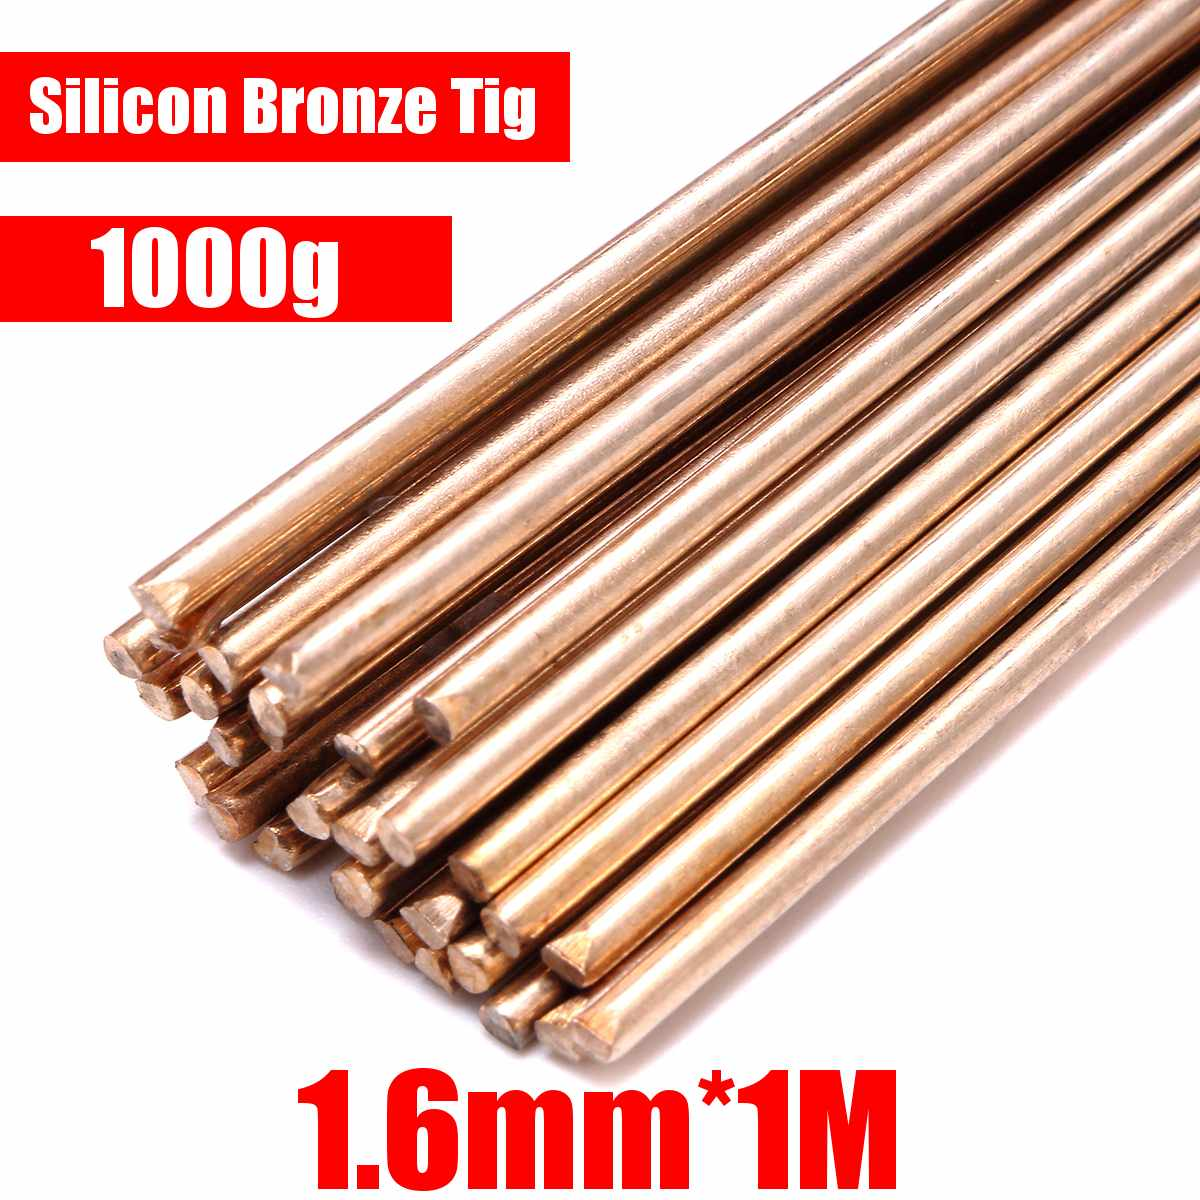 1000g 50000PSI Gold Silicon Bronze Tig Welding Rods 91cm Long Rod 1.6mm Diameter